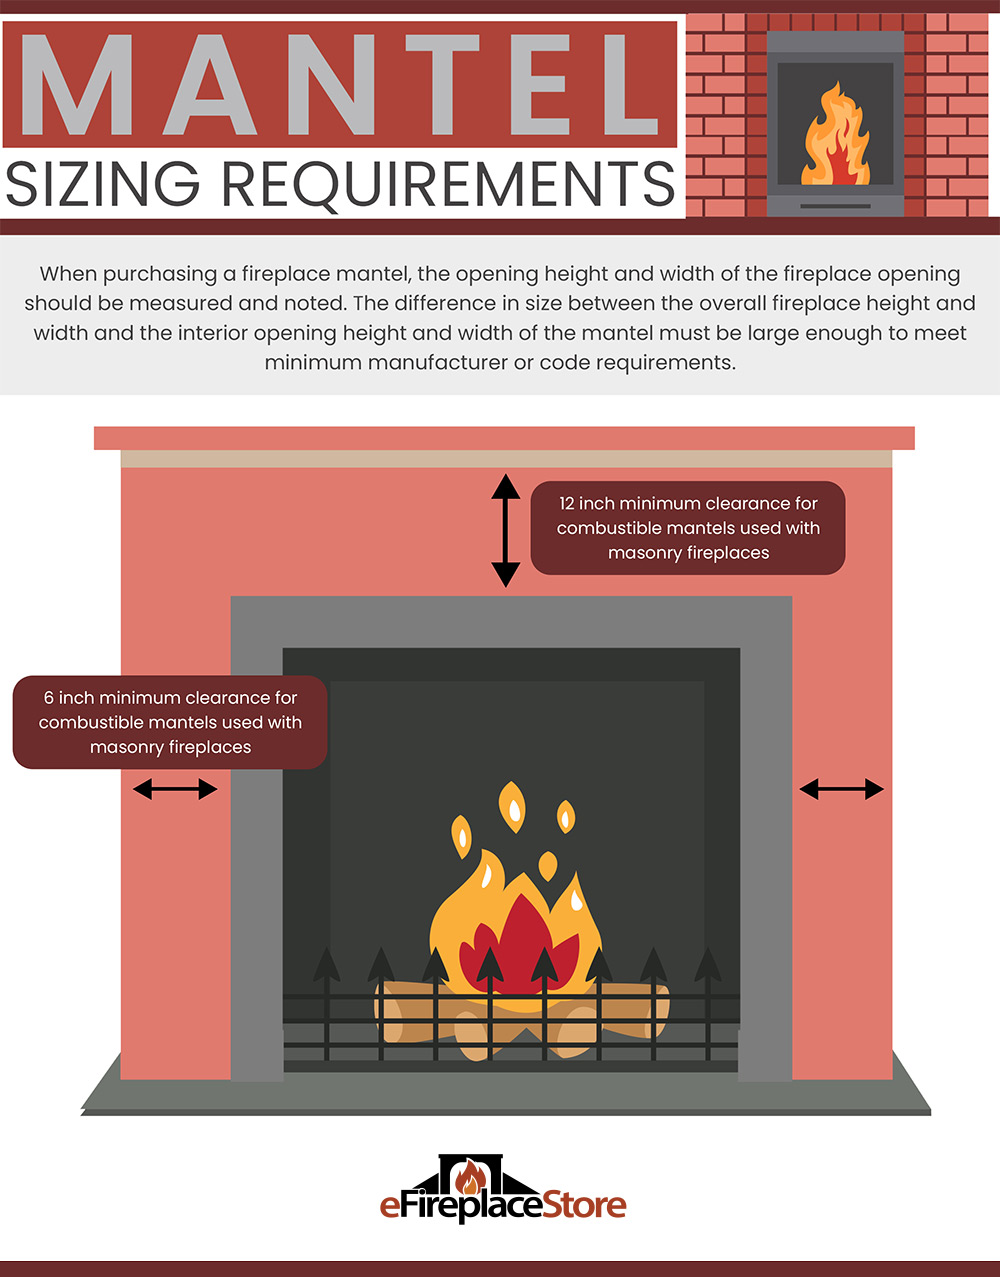 Room Size Ceiling Height And Other Features Are An Important Part Of Choosing The Right Fireplace Mantel For A